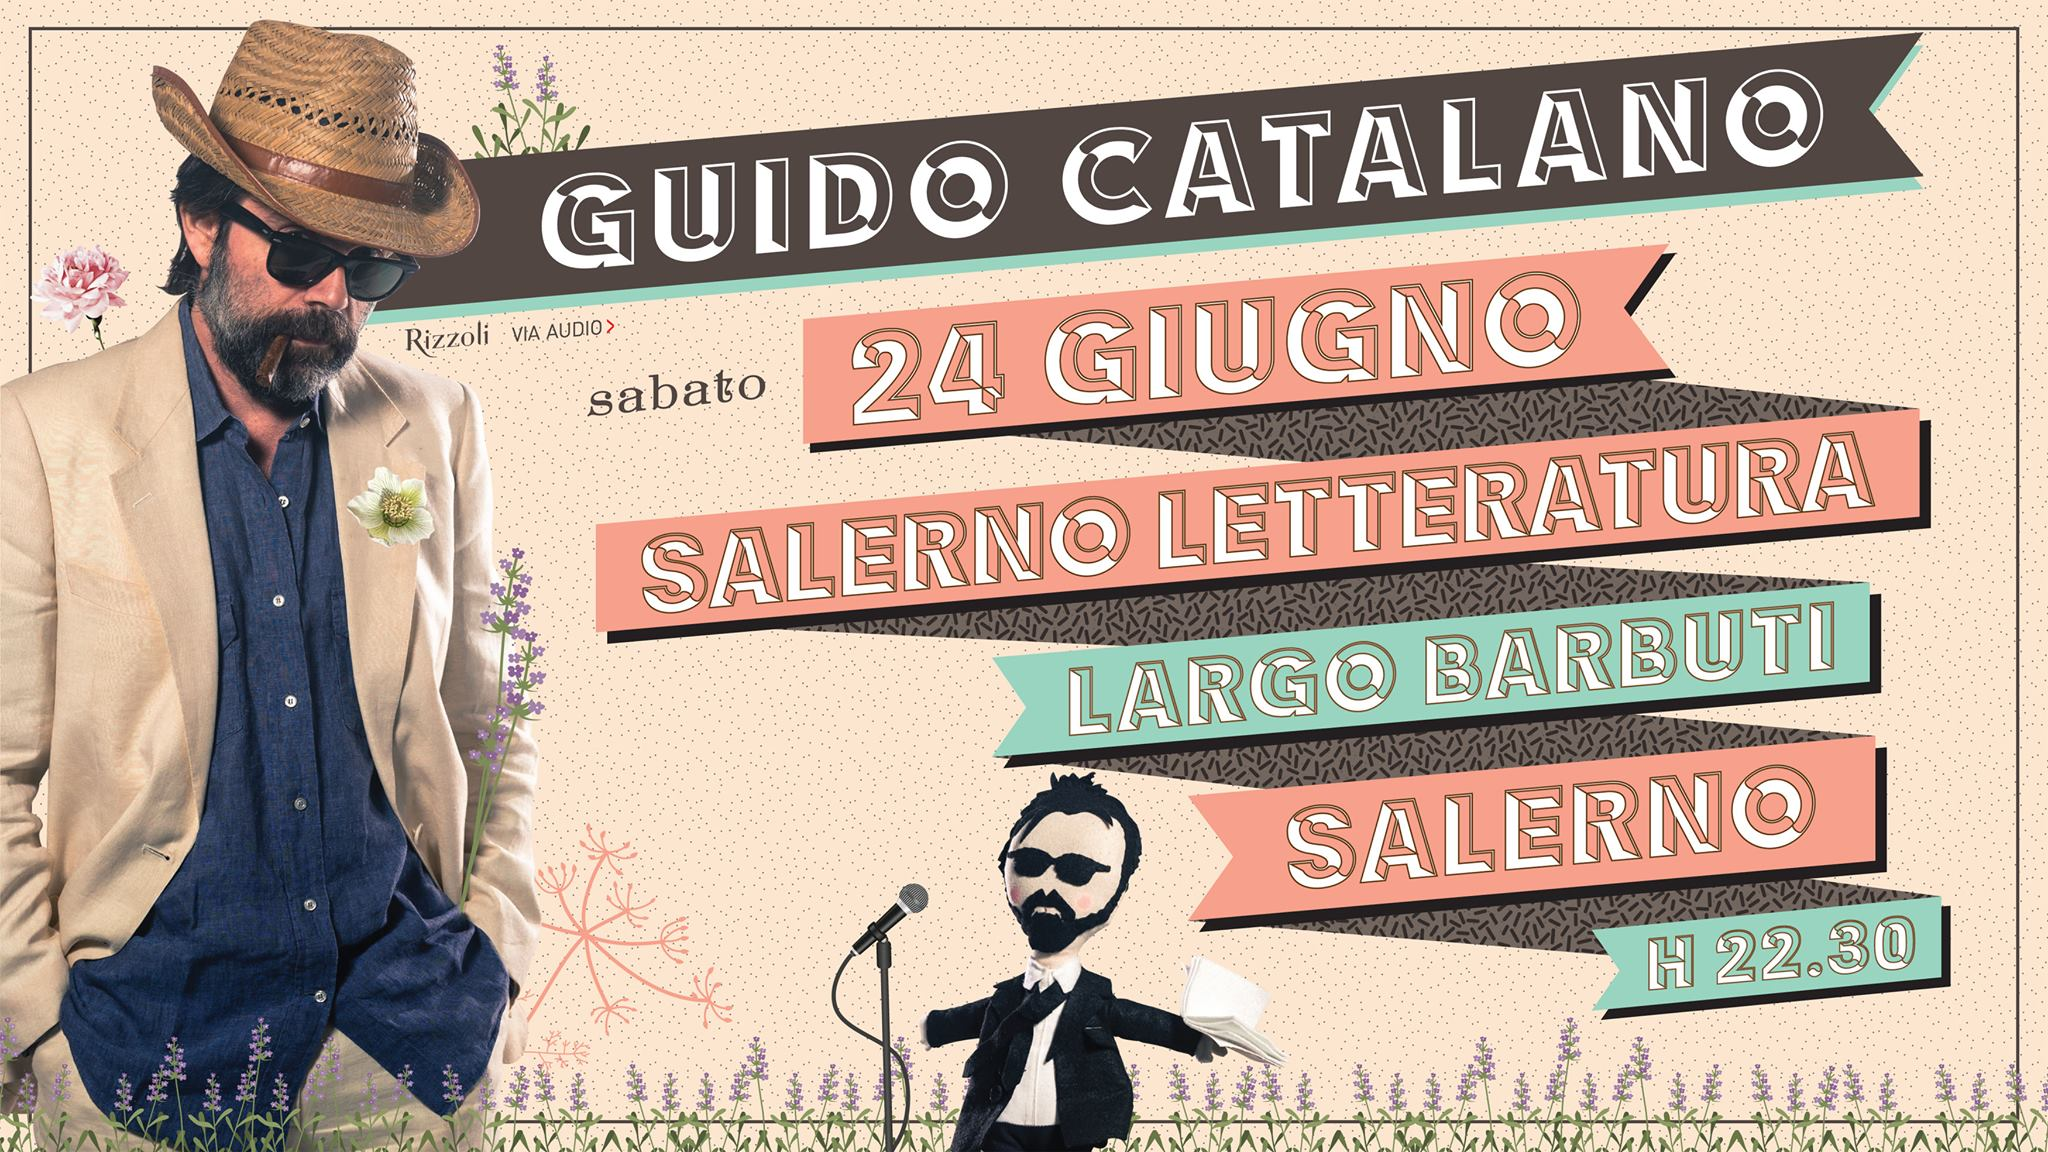 Guido Catalano al Salerno Letteratura